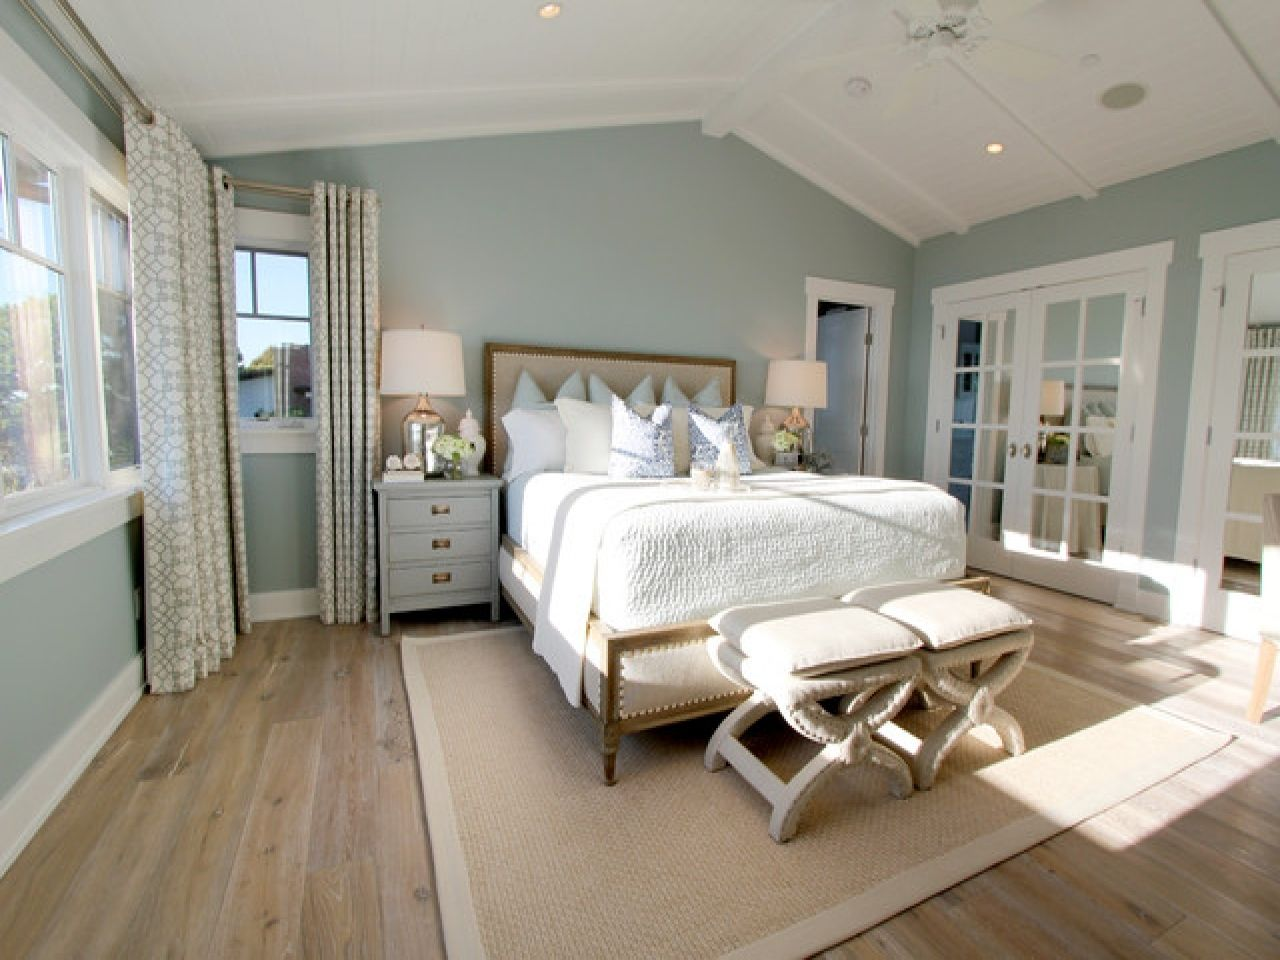 Rustic Master Bedroom Ideas Light Blue Walls With Regard To Size 1280 X